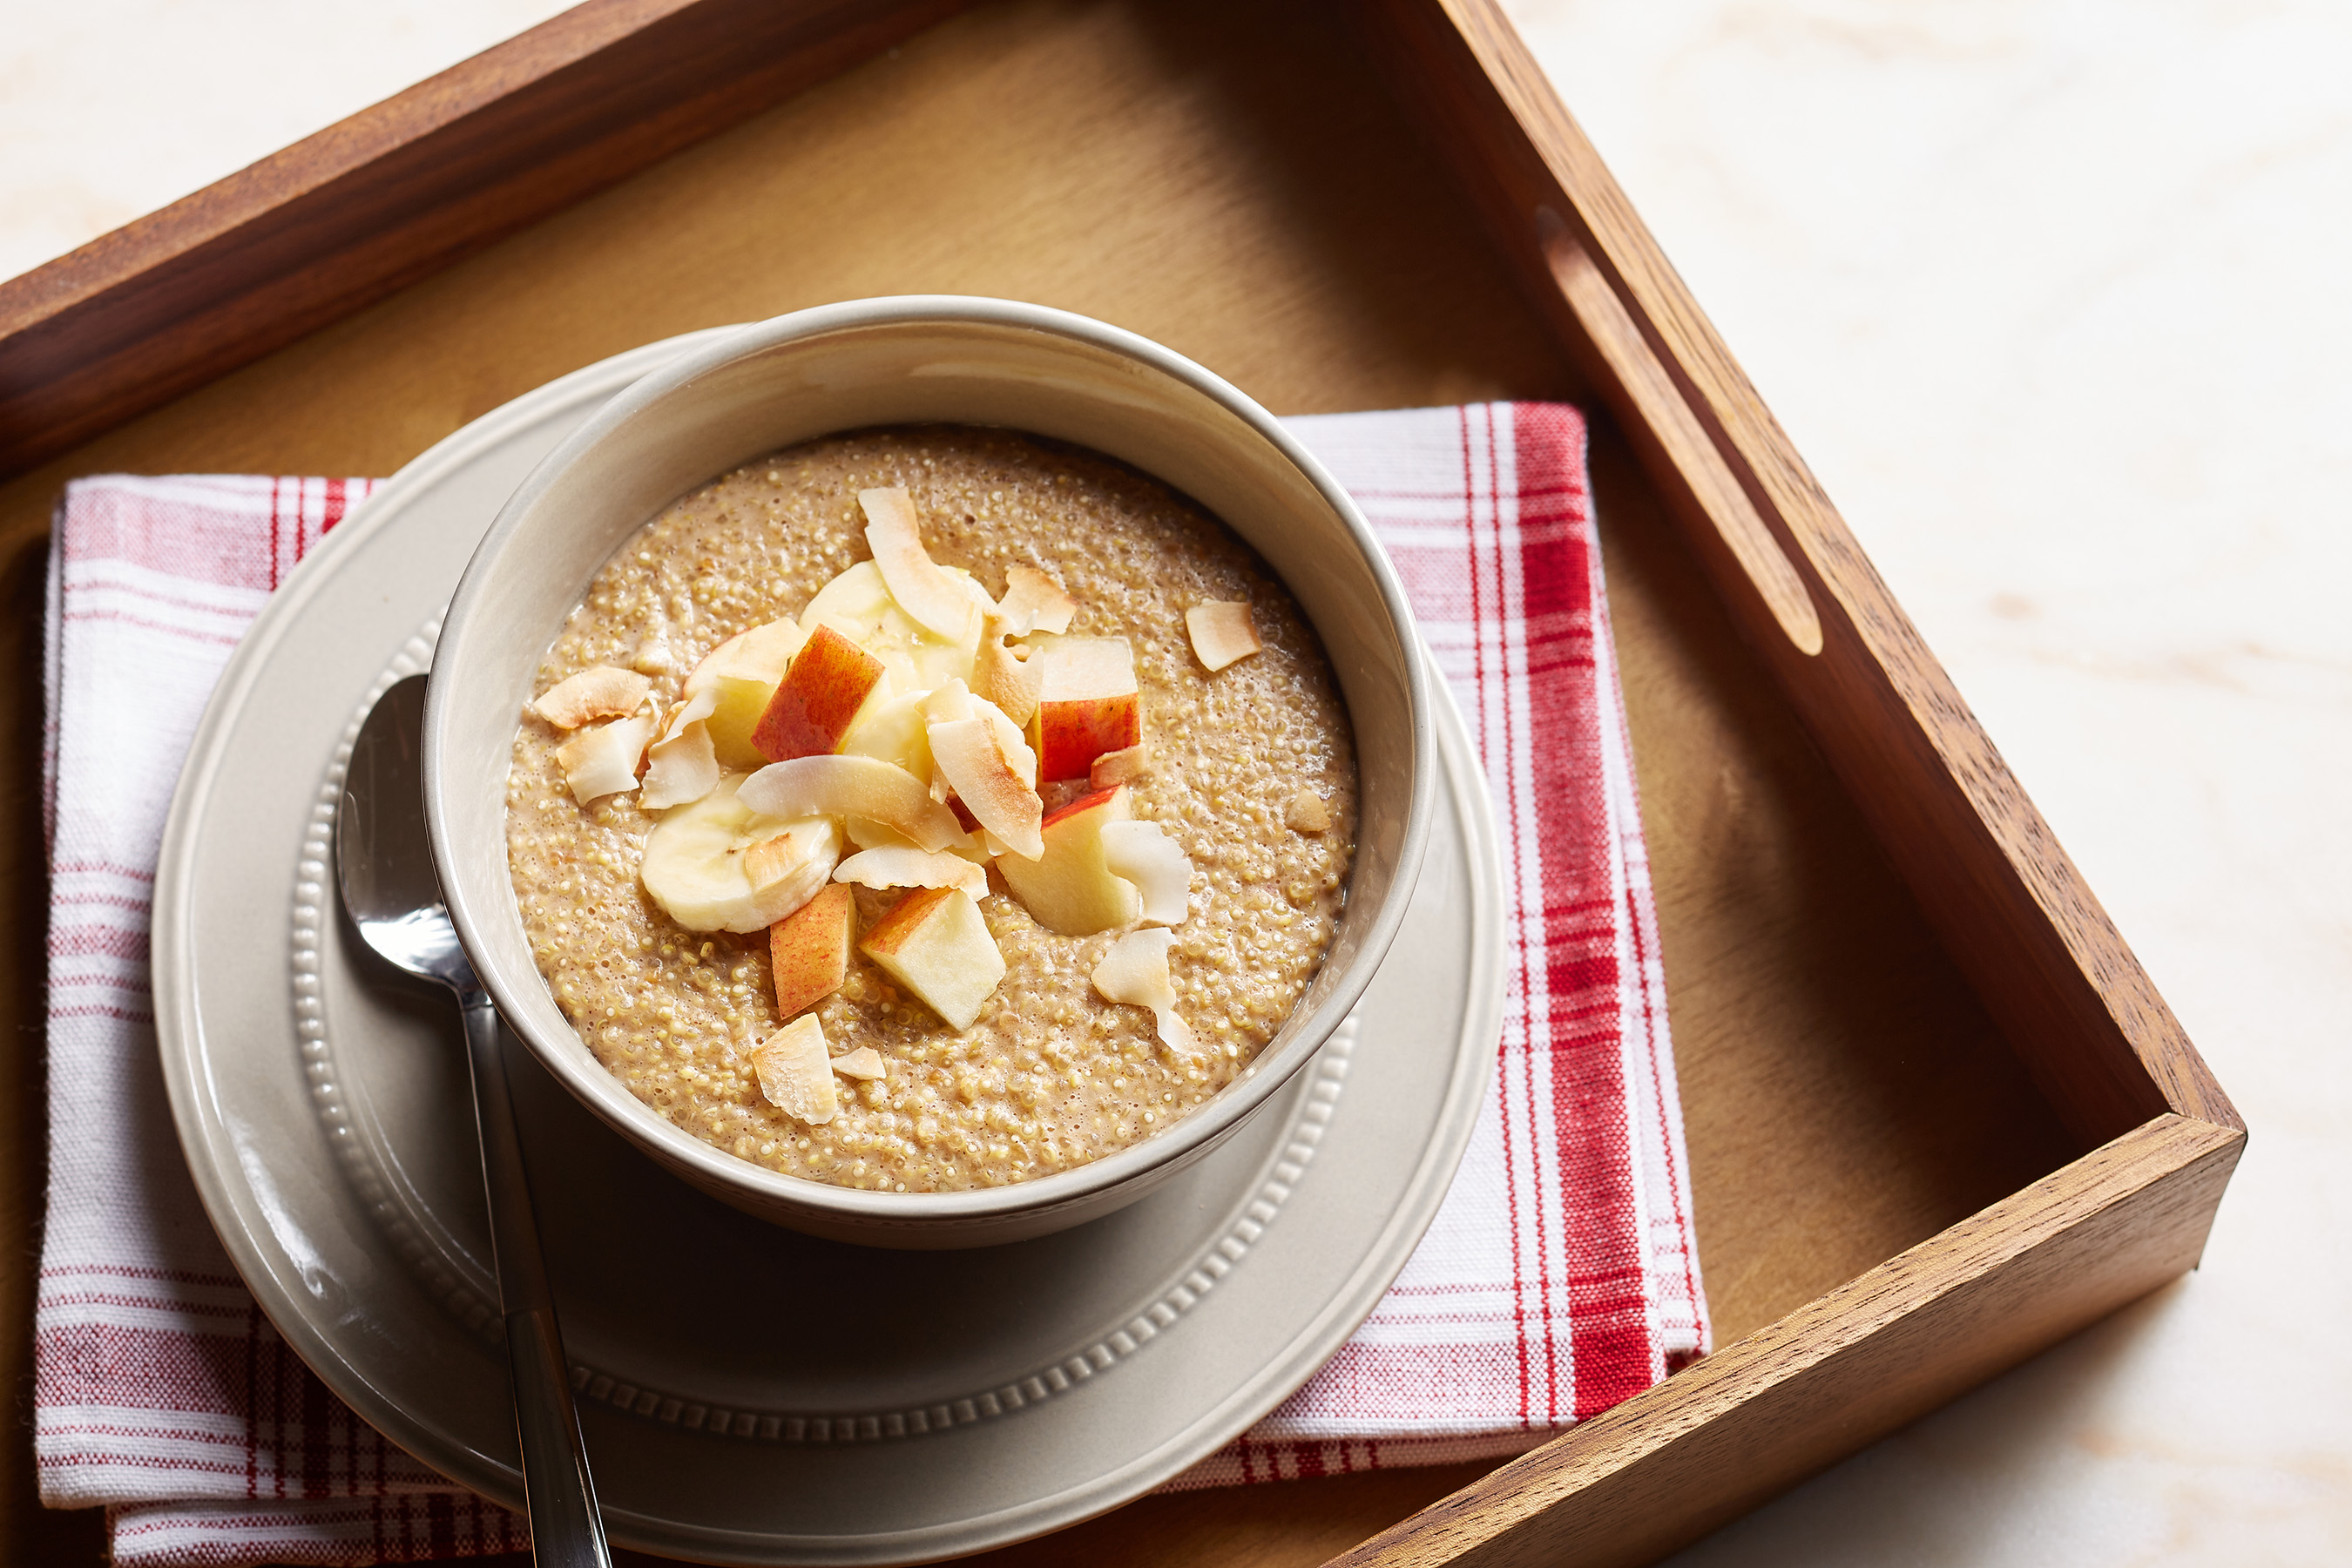 Chef Catherine De Orio created this easy, make-ahead breakfast bowl for the #GreatAmericanCookIn Challenge. It's packed with protein and mixed with naturally sweet honey and Peter Pan Simply Ground Peanut Butter, which adds delicious peanut flavor, a lot of creaminess and just a hint of crunch. The best part about this meal is it can be made the night before so all you need to do is heat it up the next morning! Check out Chef Catherine's Protein Breakfast Recipes for more ways to start your day with a protein!